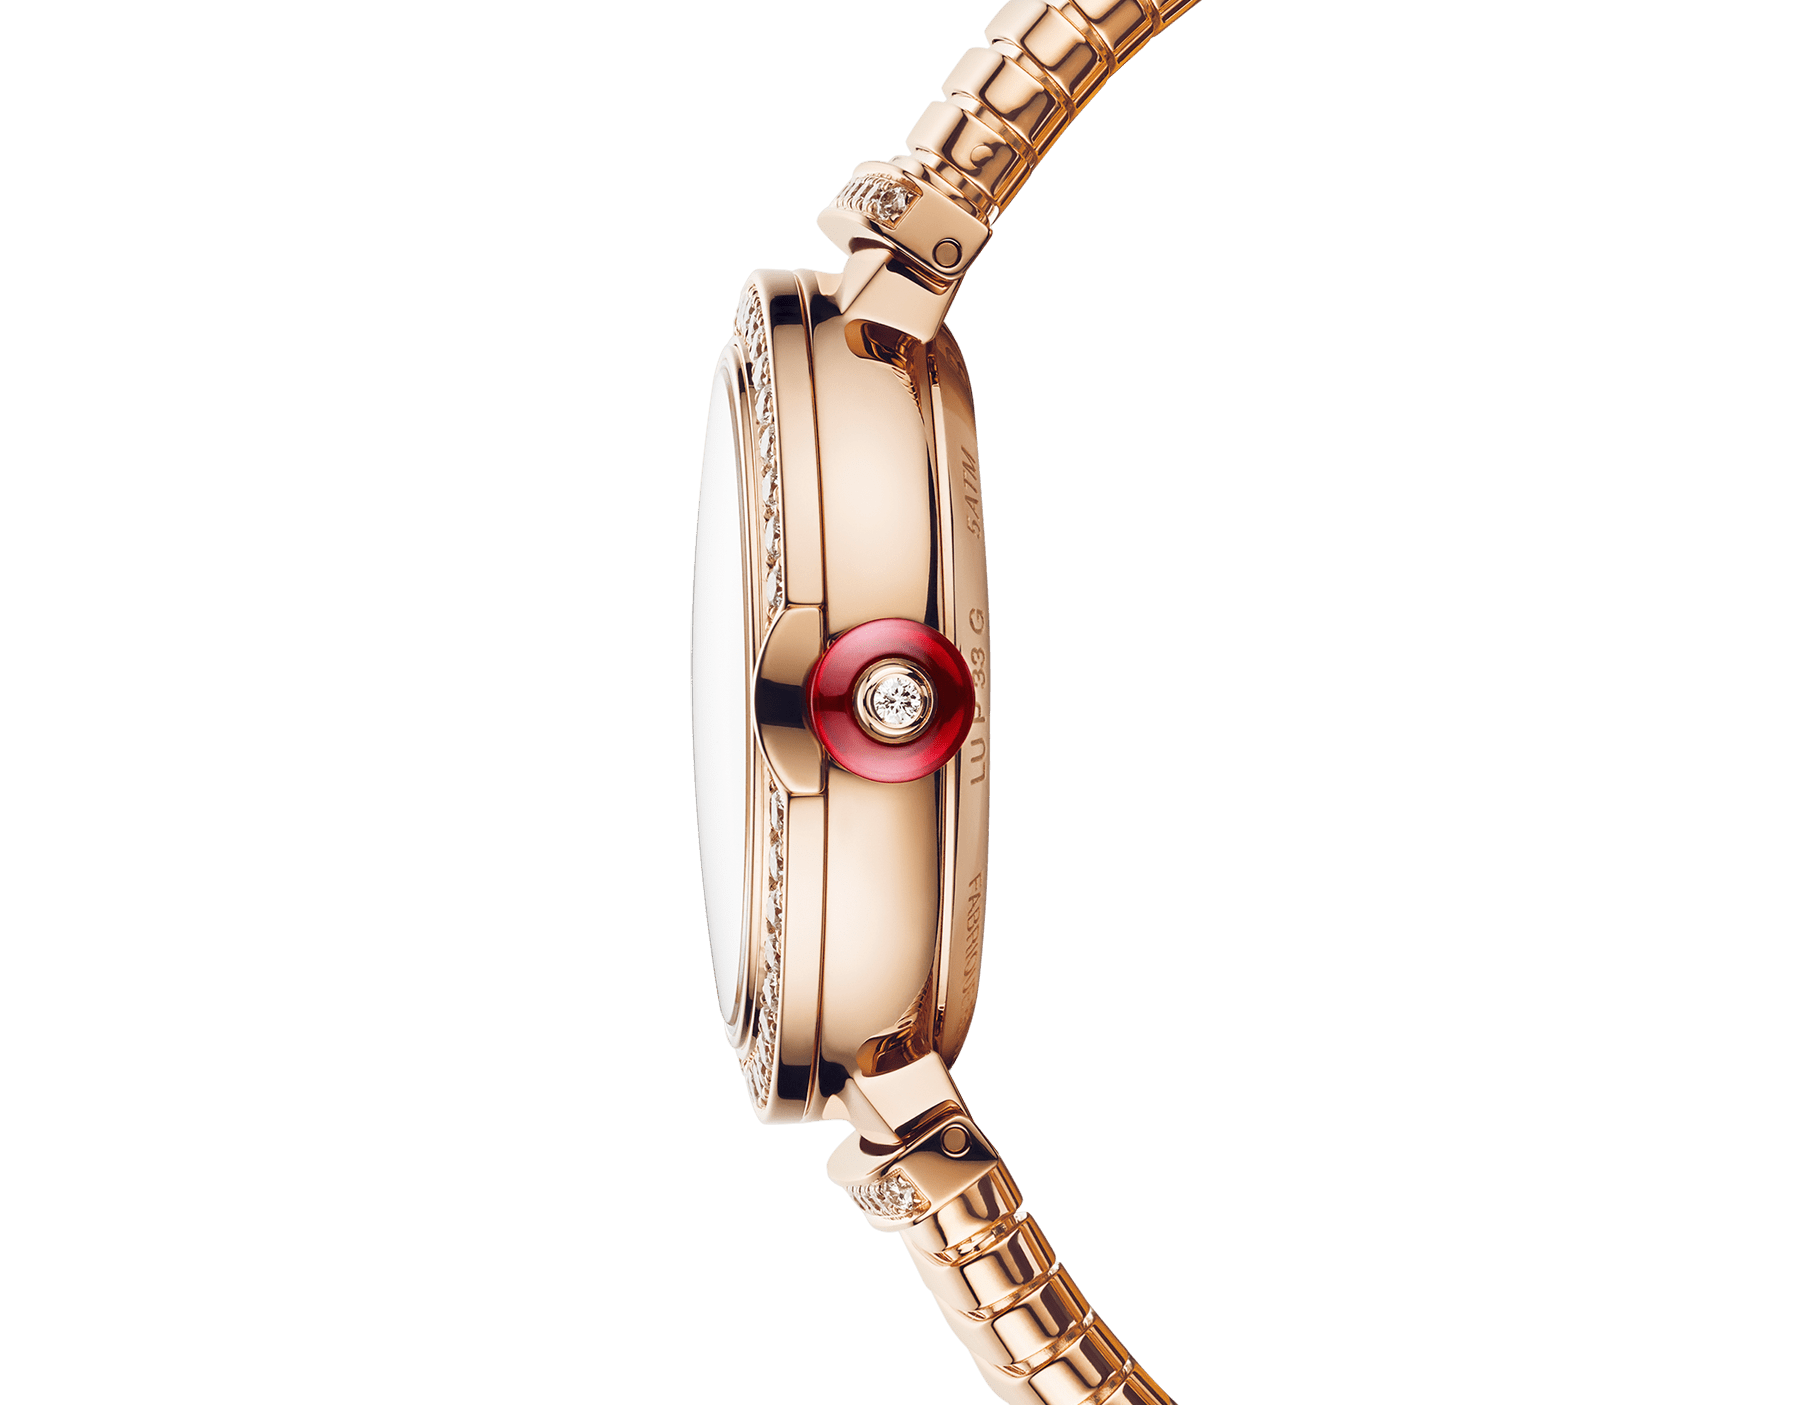 LVCEA Skeleton watch with mechanical manufacture movement, automatic winding and skeleton execution, 18 kt rose gold case, 18kt rose gold bezel set with diamonds, 18 kt rose gold openwork BVLGARI logo dial set with round brilliant-cut diamonds, red hands and 18 kt rose gold tubogas bracelet. Exclusive Edition for the United States 103134 image 3